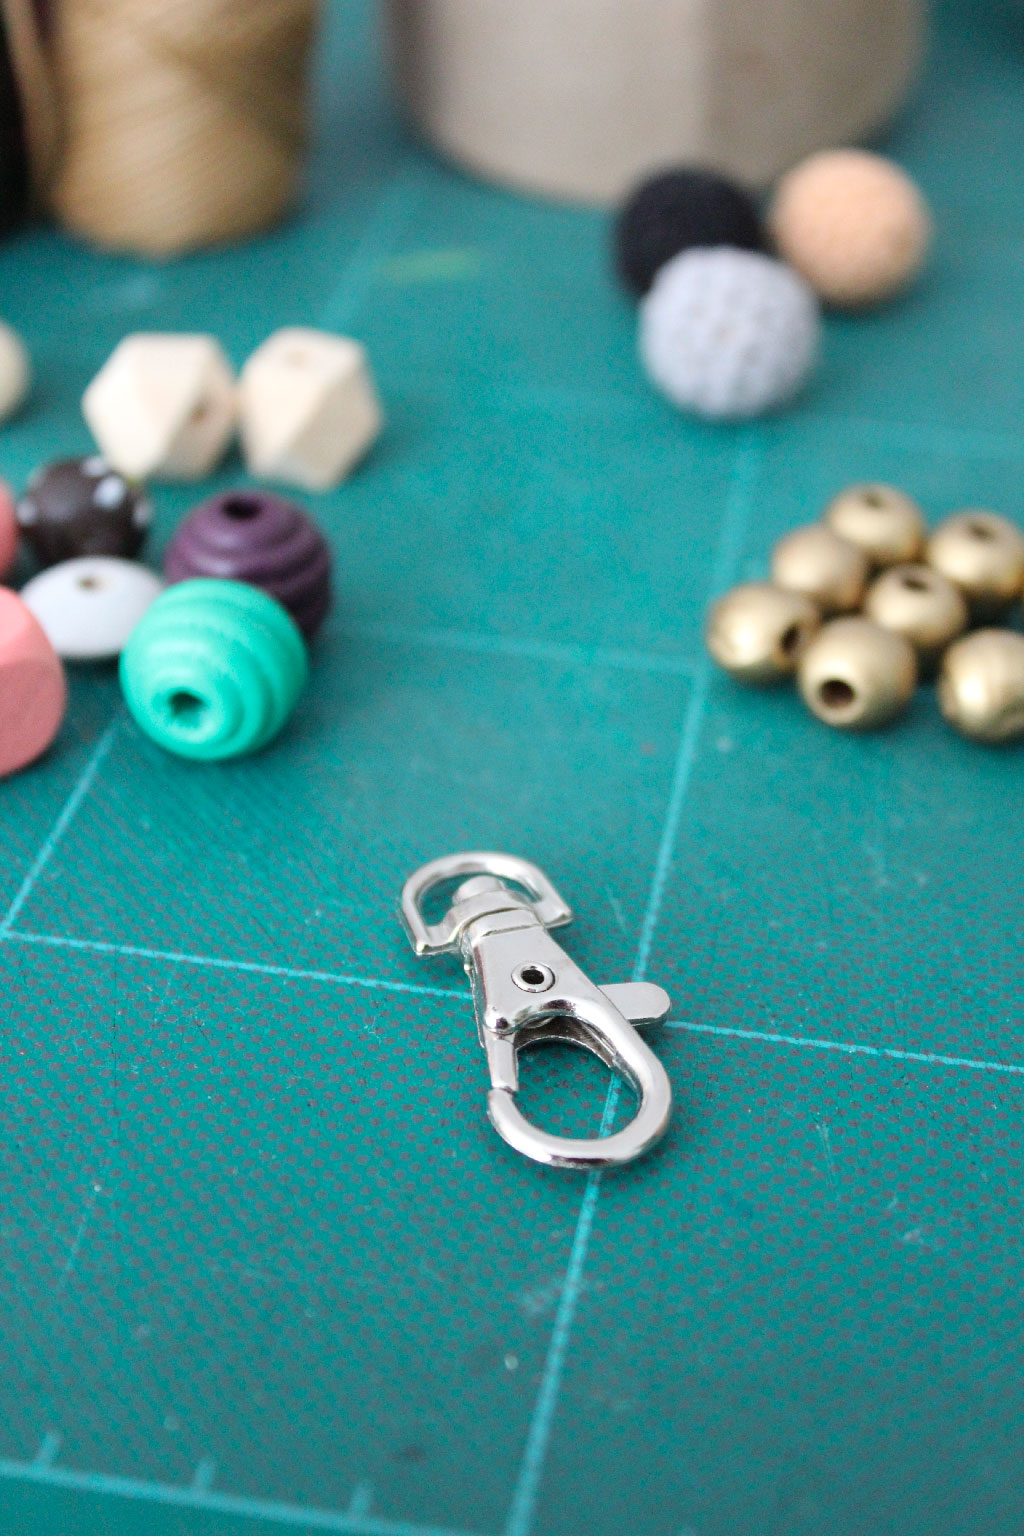 DIY Back to school - Des bijoux de sacs en perles